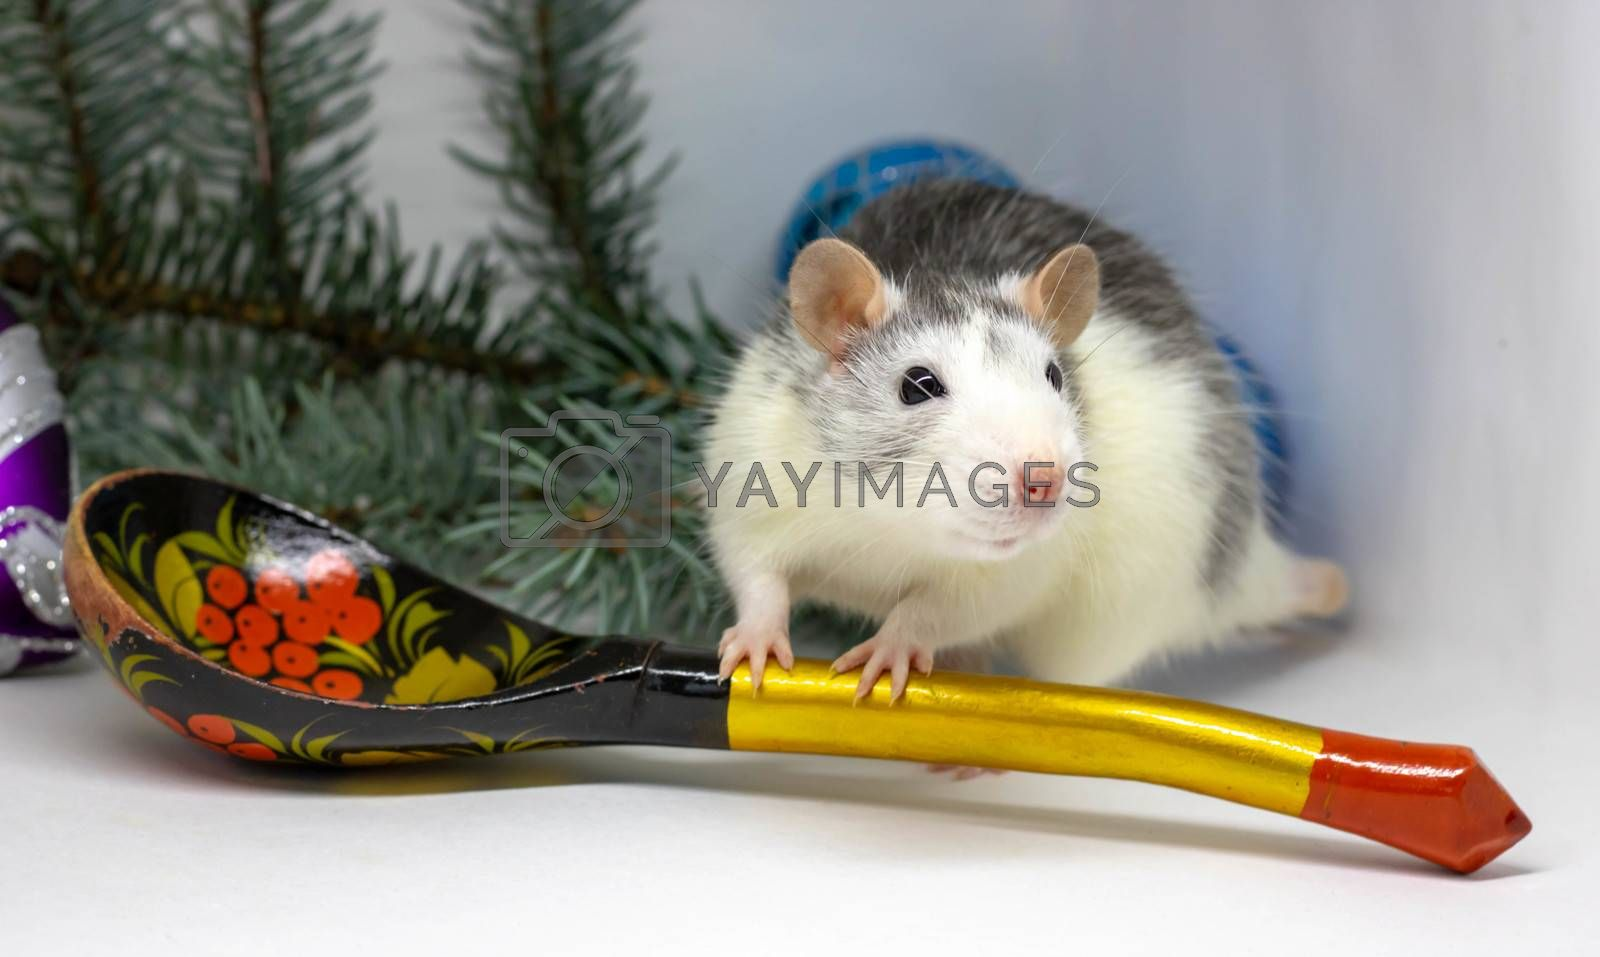 Cute silver rat sits around a large wooden spoon. Chinese New Year symbol 2020.